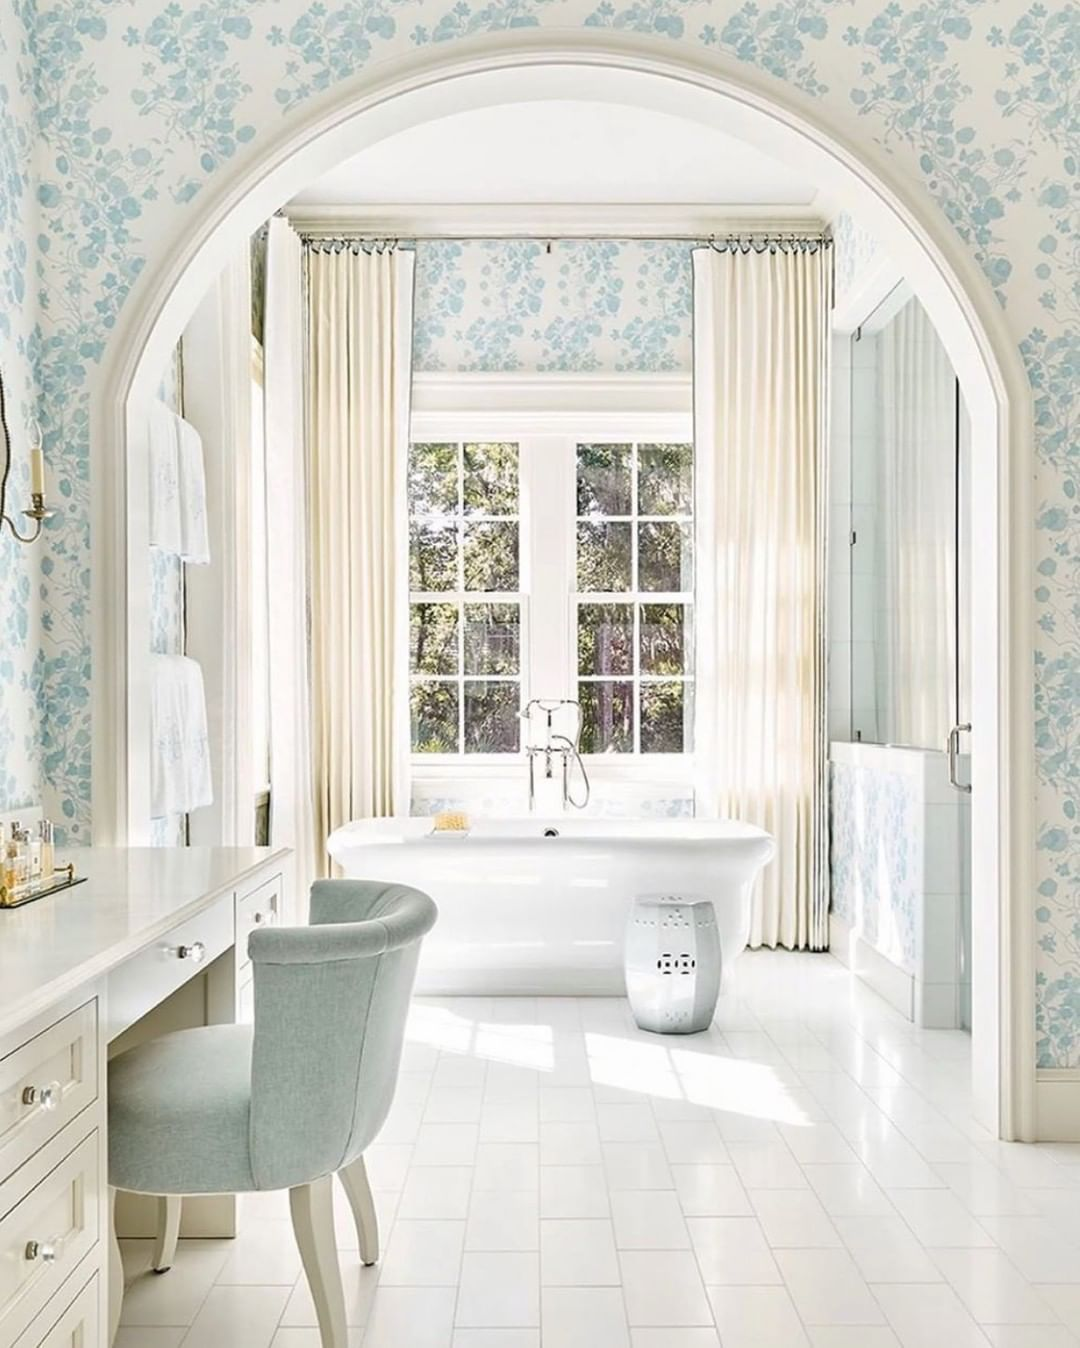 New South Home Interior Design On Instagram A Happy Bathroom For A Happy Friday How Elegant Bathroom Design White Bathroom Interior Luxury Master Bathrooms